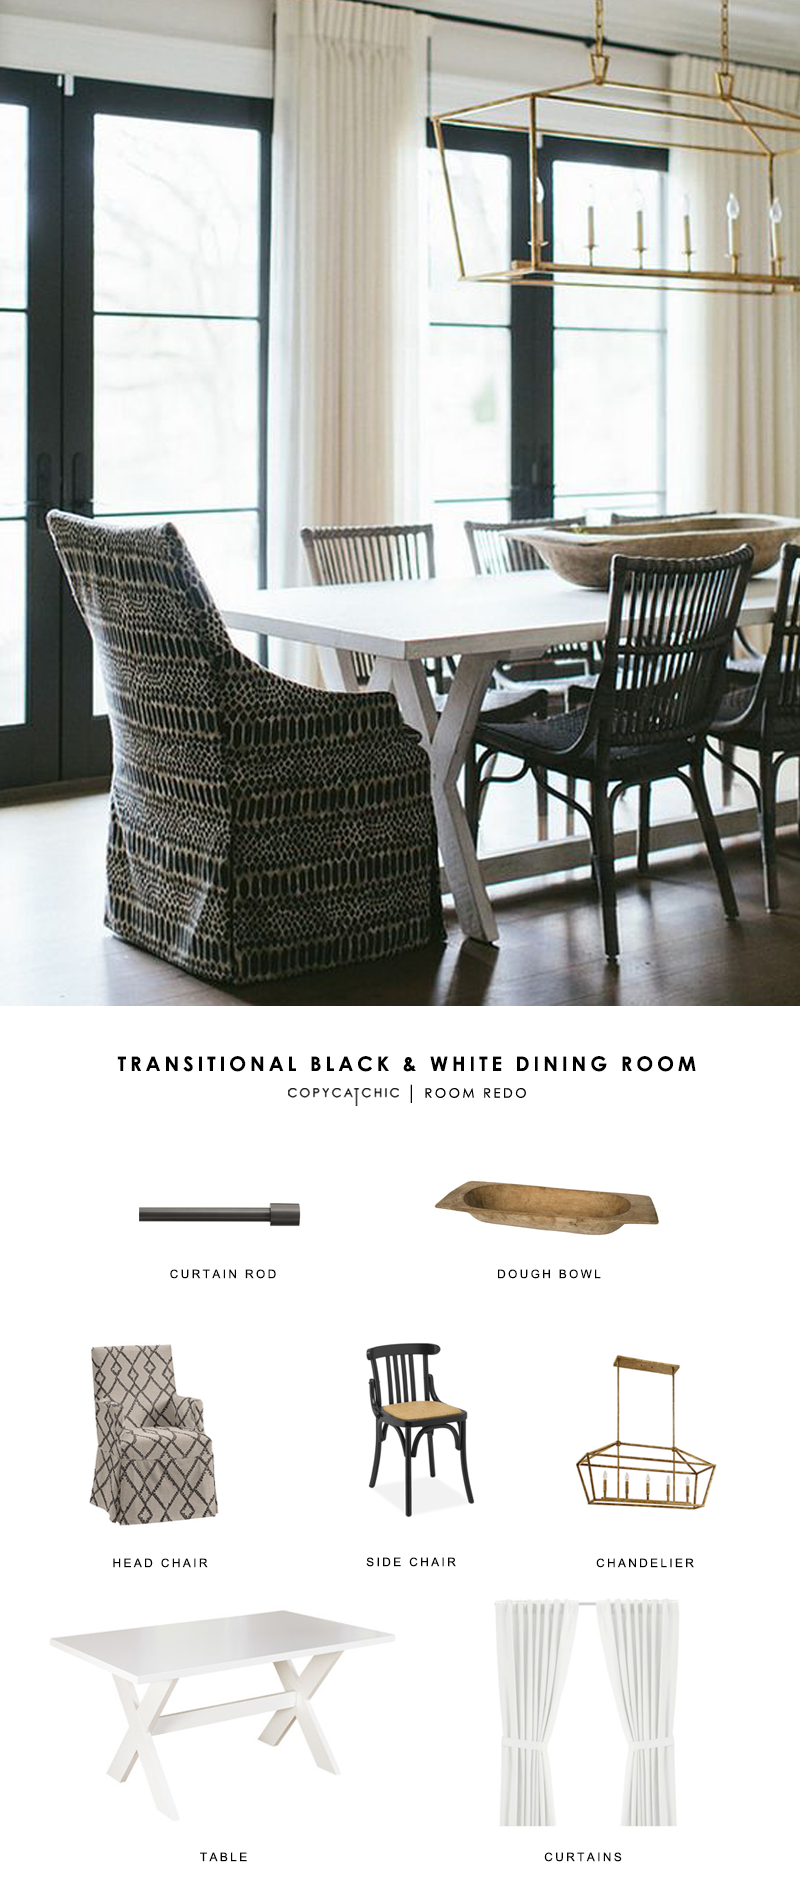 copy cat chic room redo transitional black and white dining room